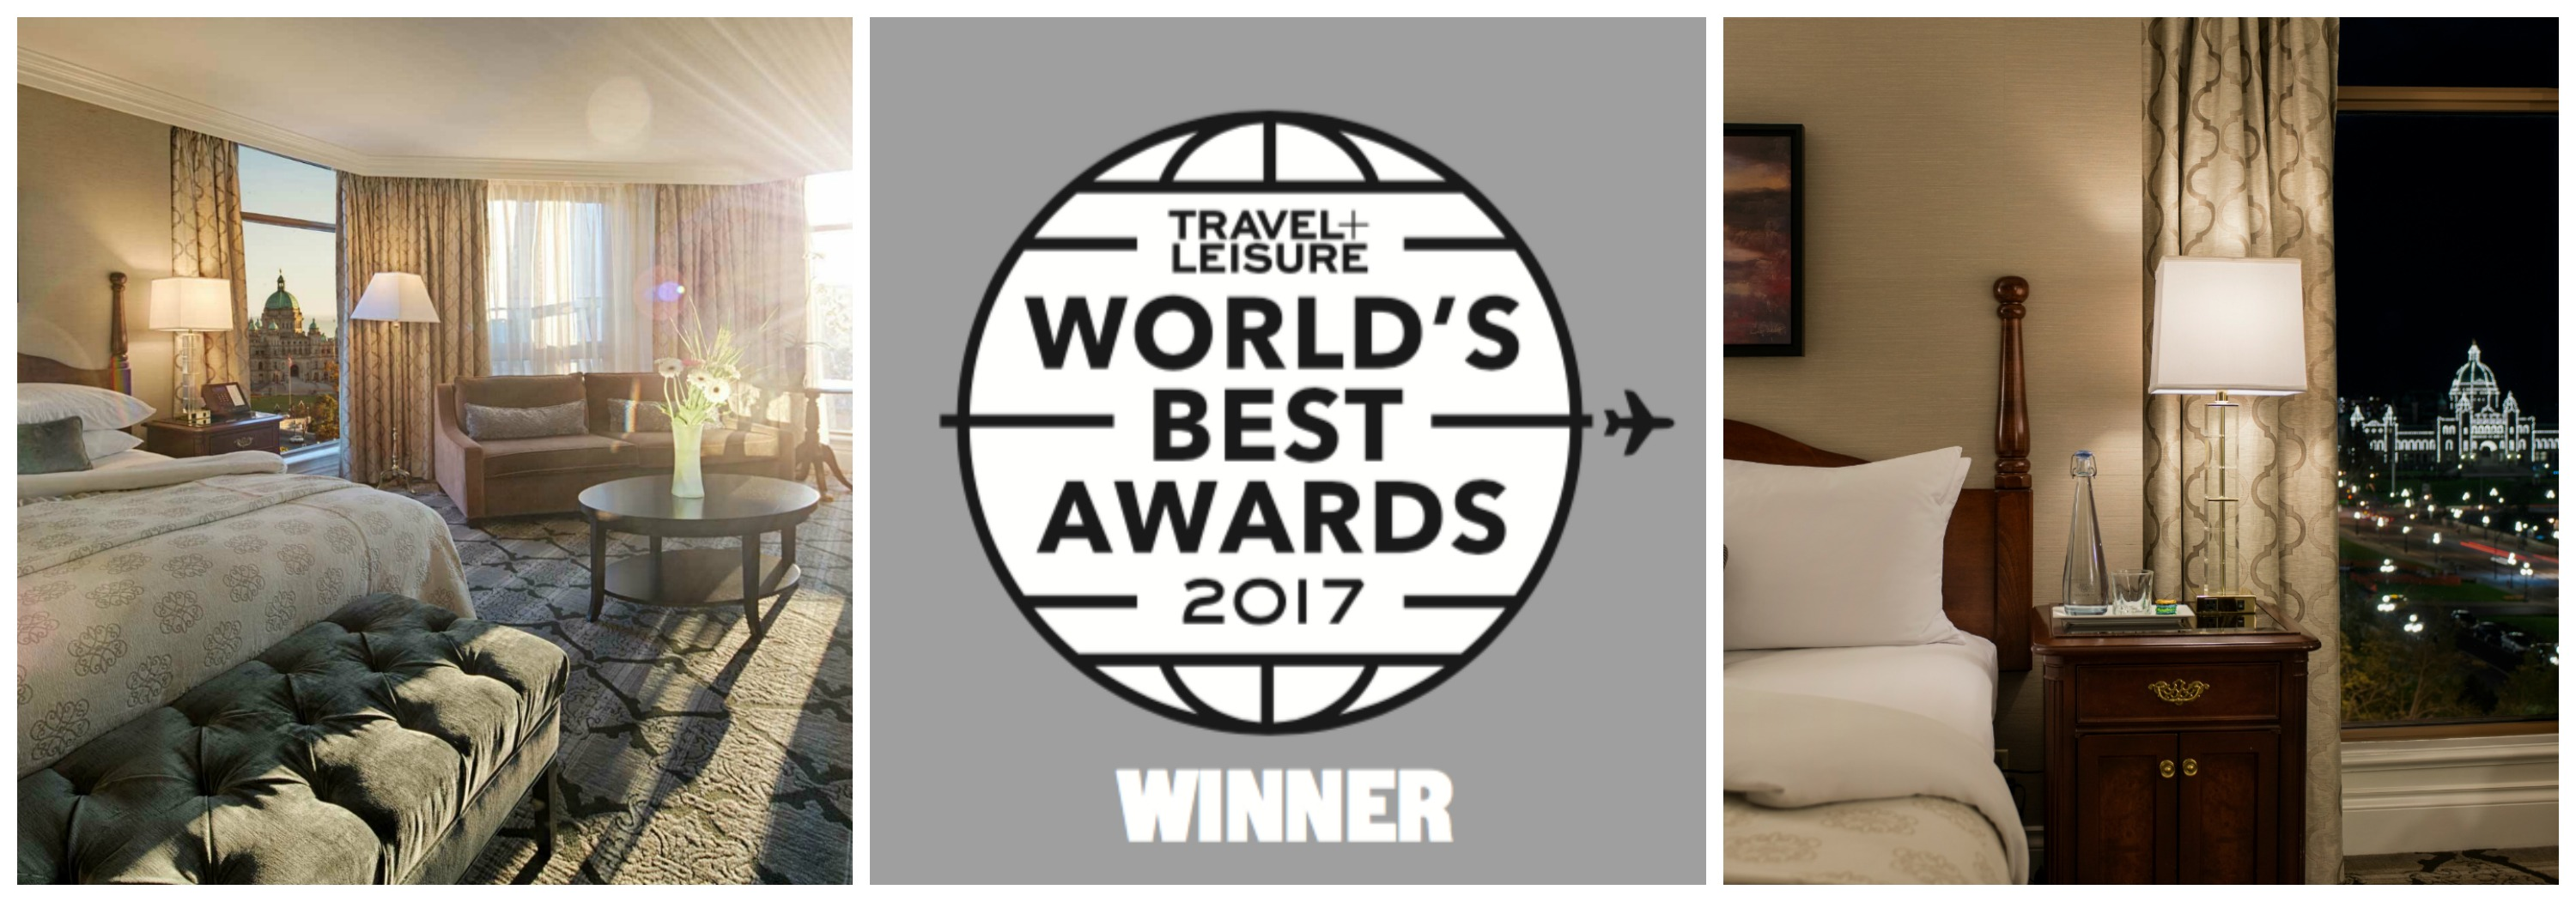 Magnolia Hotel Spa Named 1 City Hotel In Canada In The Travel Leisure World S Best Awards 2017 Readers Survey Hawksworth Communications